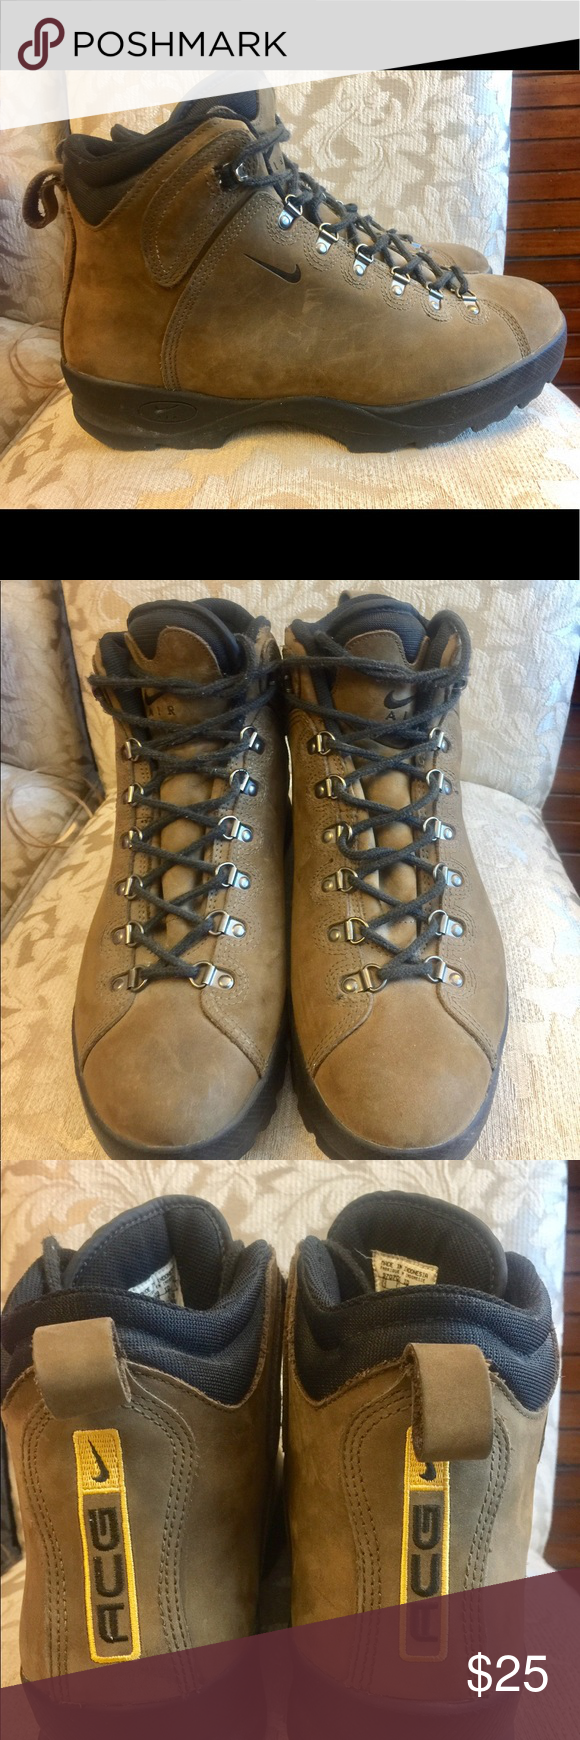 Nike AIR ACG Vintage Hiking Boot | Boots, Mens hiking boots ...